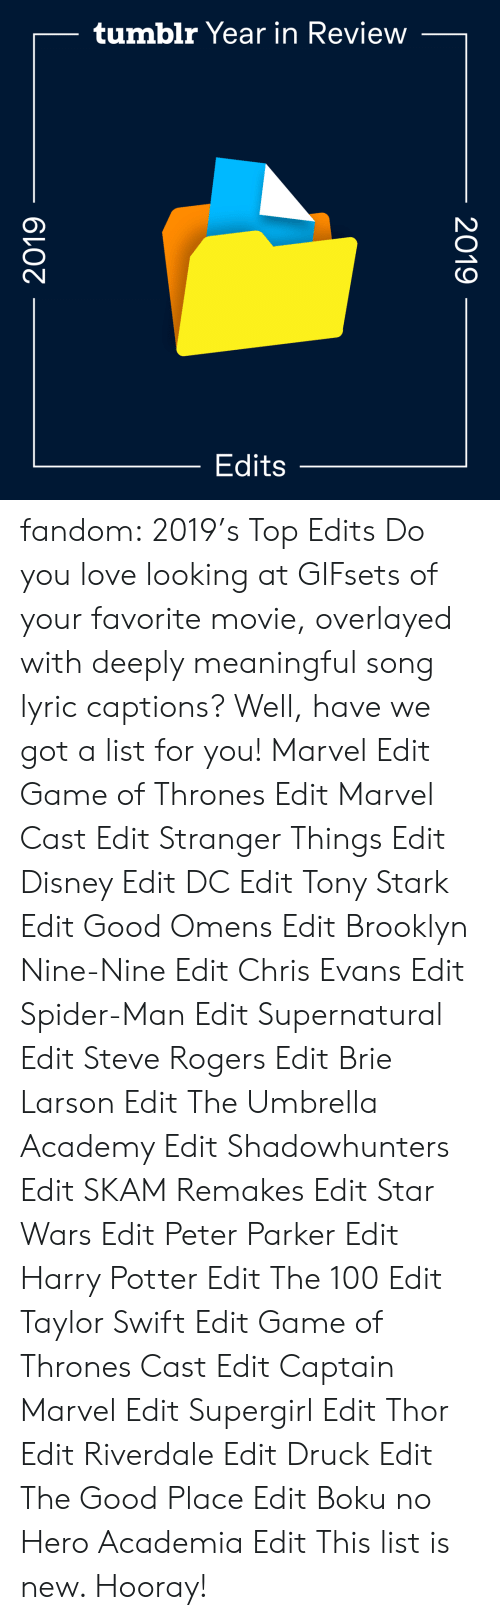 Chris Evans: tumblr Year in Review  Edits  2019  2019 fandom:  2019's Top Edits  Do you love looking at GIFsets of your favorite movie, overlayed with deeply meaningful song lyric captions? Well, have we got a list for you!  Marvel Edit  Game of Thrones Edit  Marvel Cast Edit  Stranger Things Edit  Disney Edit  DC Edit  Tony Stark Edit  Good Omens Edit  Brooklyn Nine-Nine Edit  Chris Evans Edit  Spider-Man Edit  Supernatural Edit  Steve Rogers Edit  Brie Larson Edit  The Umbrella Academy Edit  Shadowhunters Edit  SKAM Remakes Edit  Star Wars Edit  Peter Parker Edit  Harry Potter Edit  The 100 Edit  Taylor Swift Edit  Game of Thrones Cast Edit  Captain Marvel Edit  Supergirl Edit  Thor Edit  Riverdale Edit  Druck Edit  The Good Place Edit  Boku no Hero Academia Edit This list is new. Hooray!